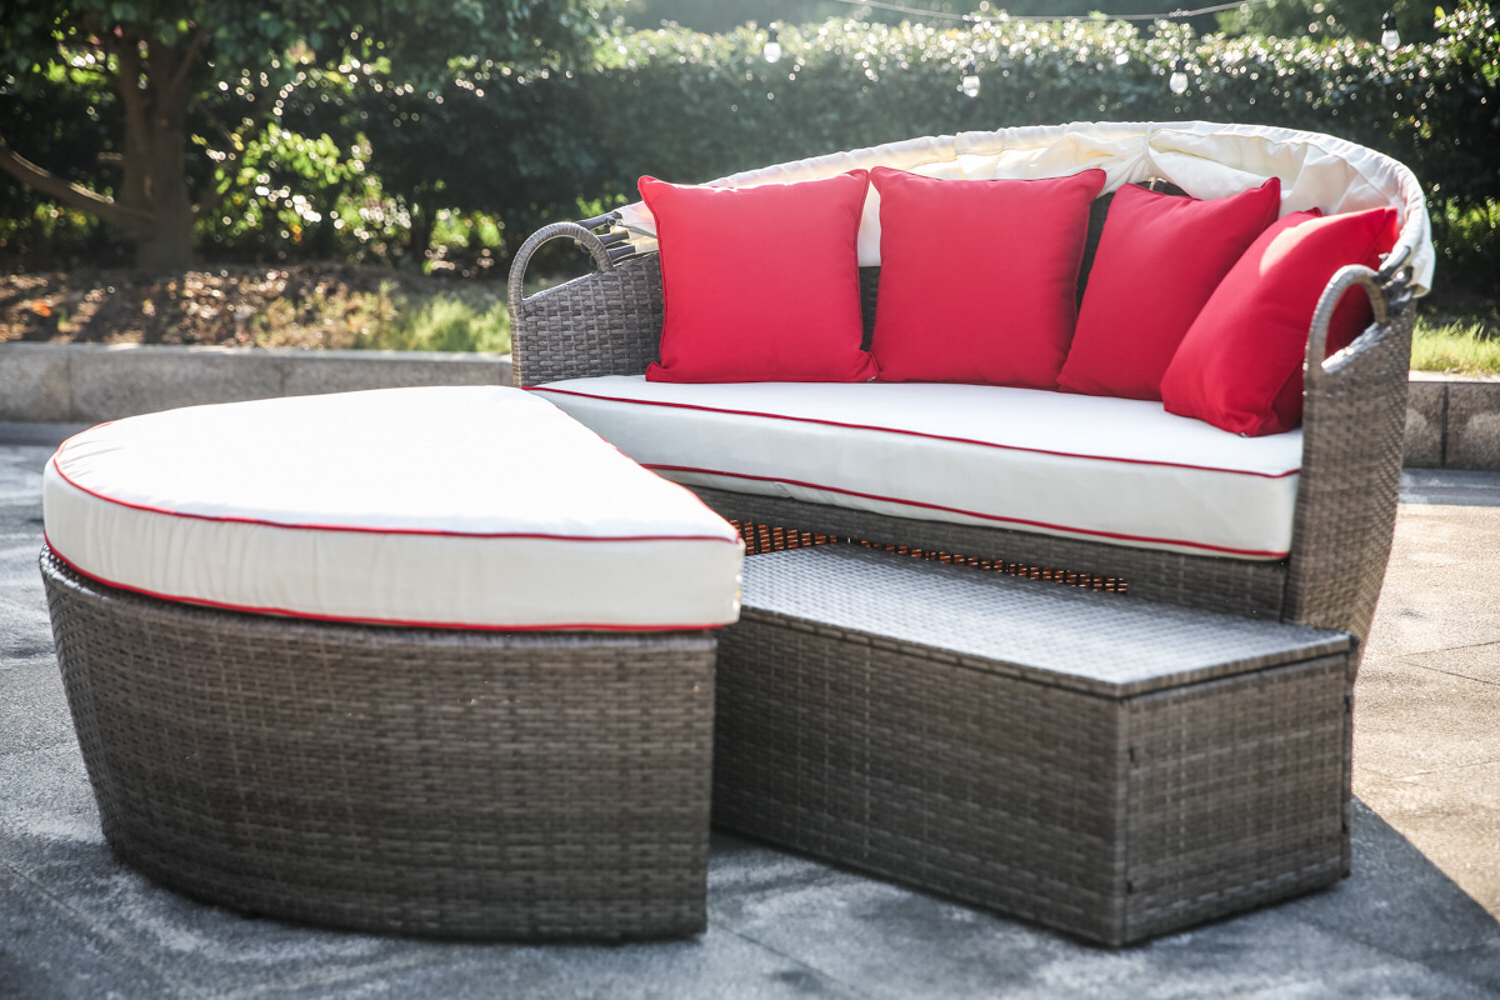 Well Known Purington Circular Patio Sectionals With Cushions Intended For Fansler Patio Daybed With Cushions (View 20 of 20)